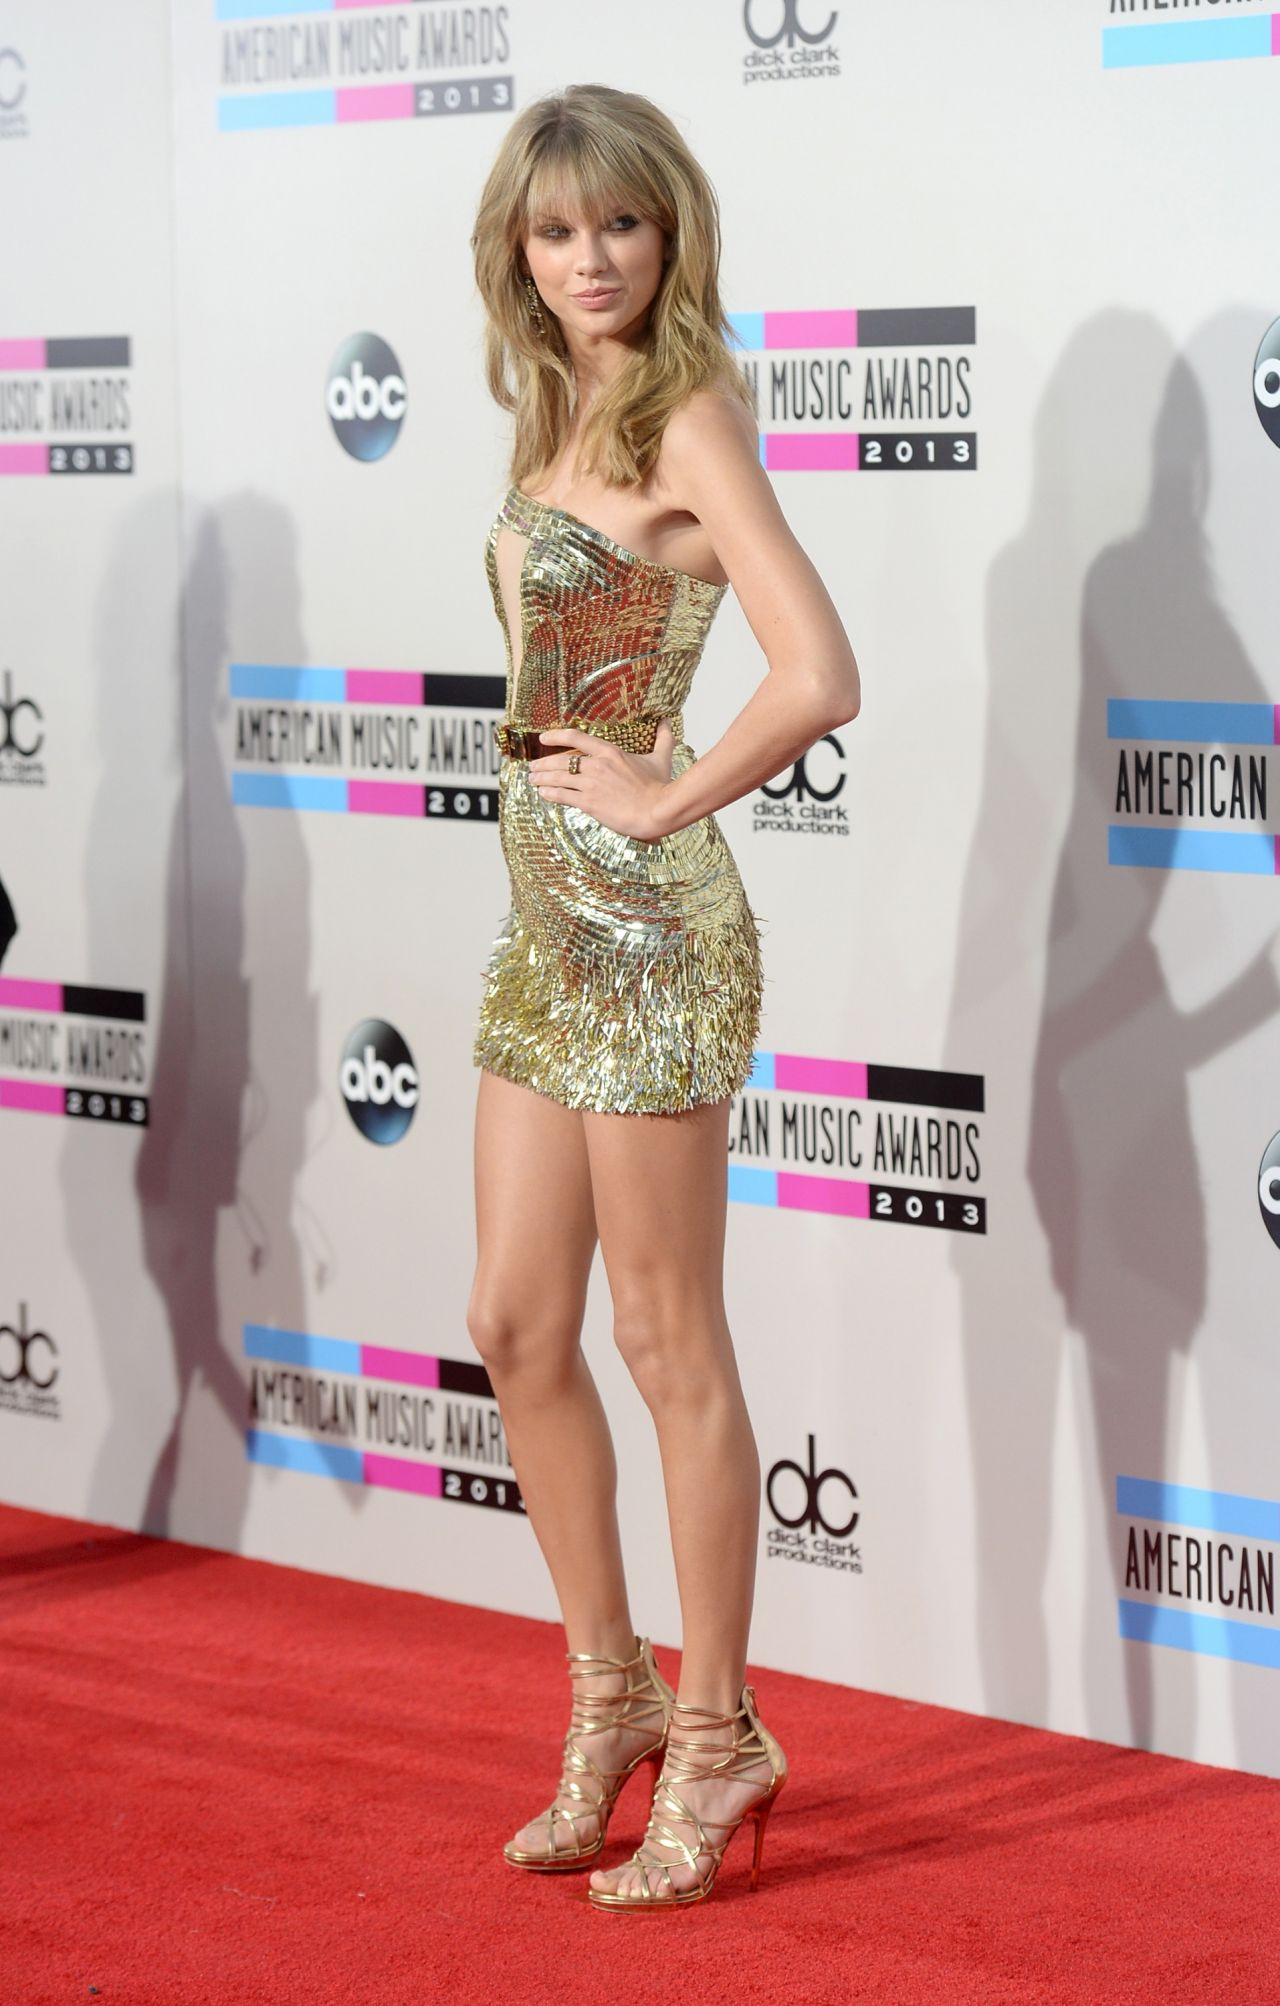 Taylor Swift Looks Hot On Red Carpet 2013 American Music